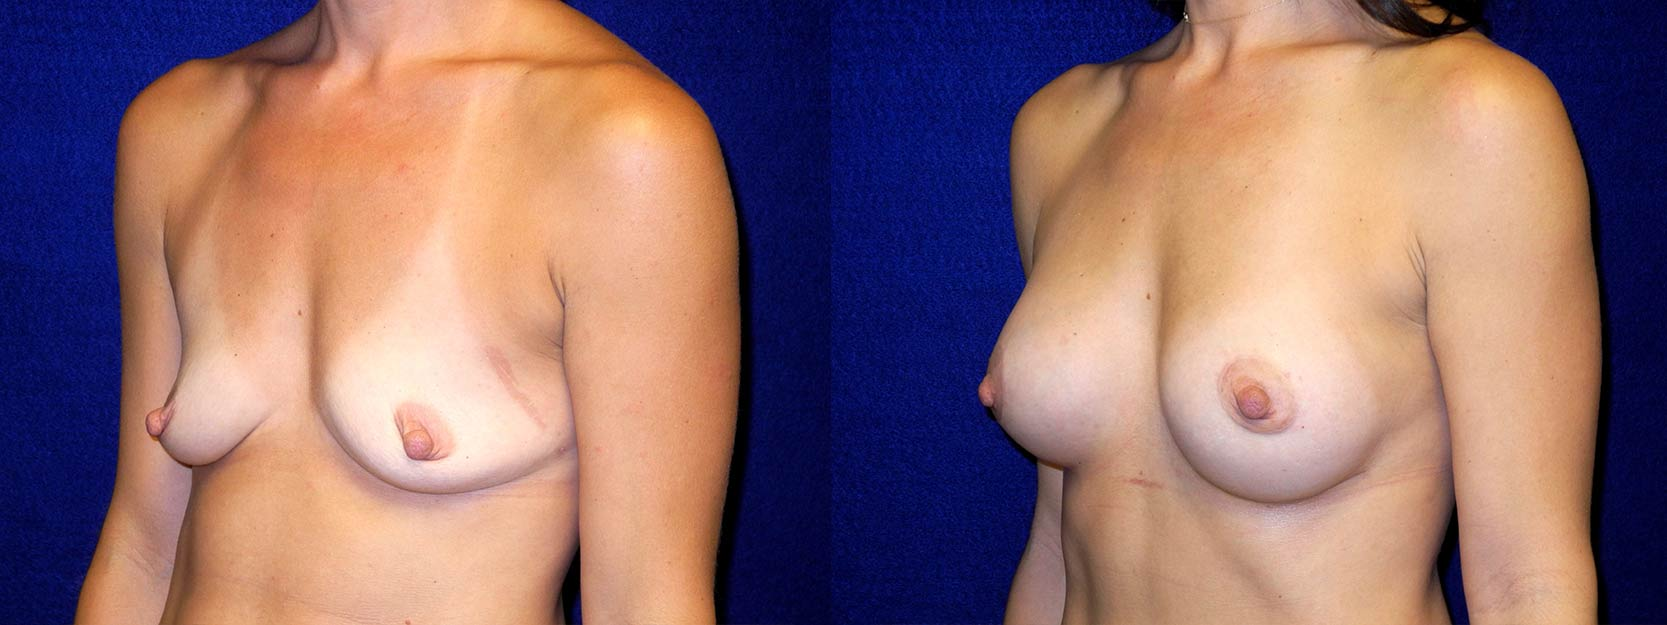 Left 3/4 View - Breast Augmentation with periareolar Lift After Pregnancy with Silicone Implants